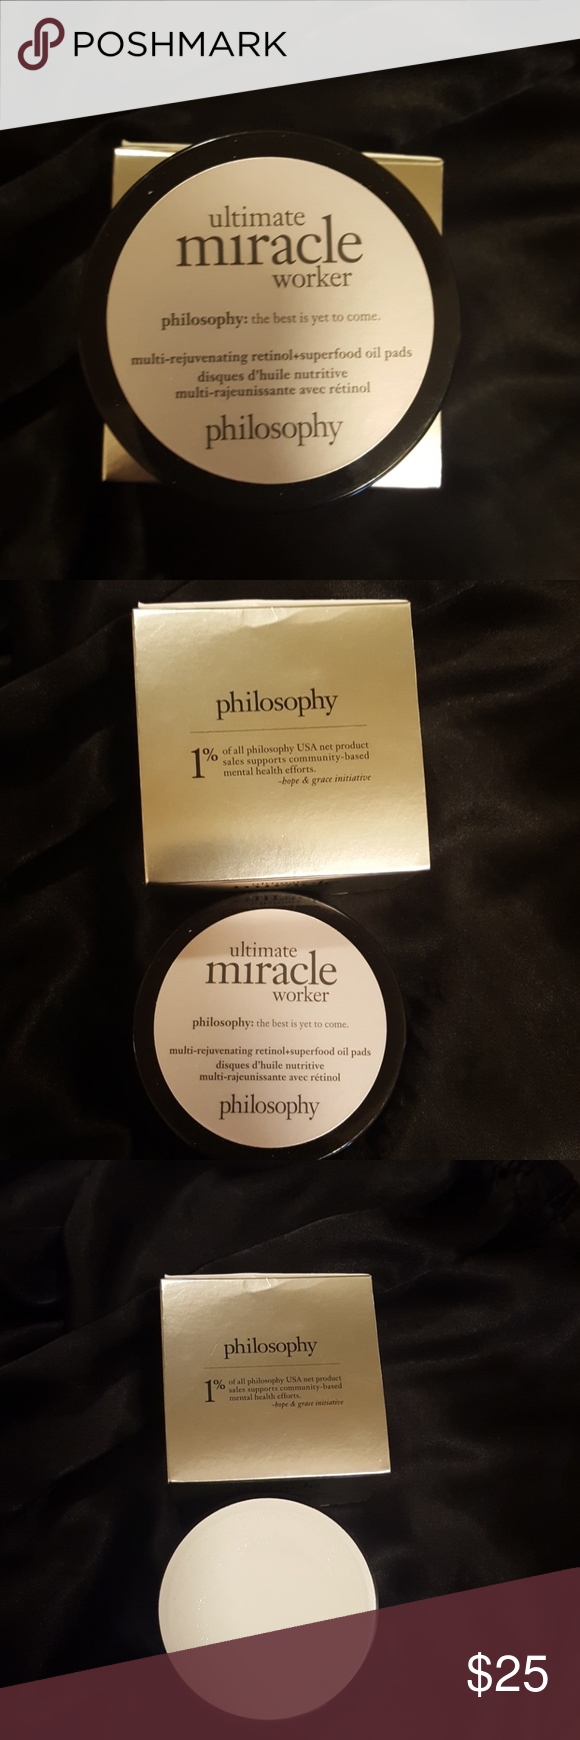 Philosophy Ultimate Miracle Worker Pads Philosophy Clothes Design Fashion Tips